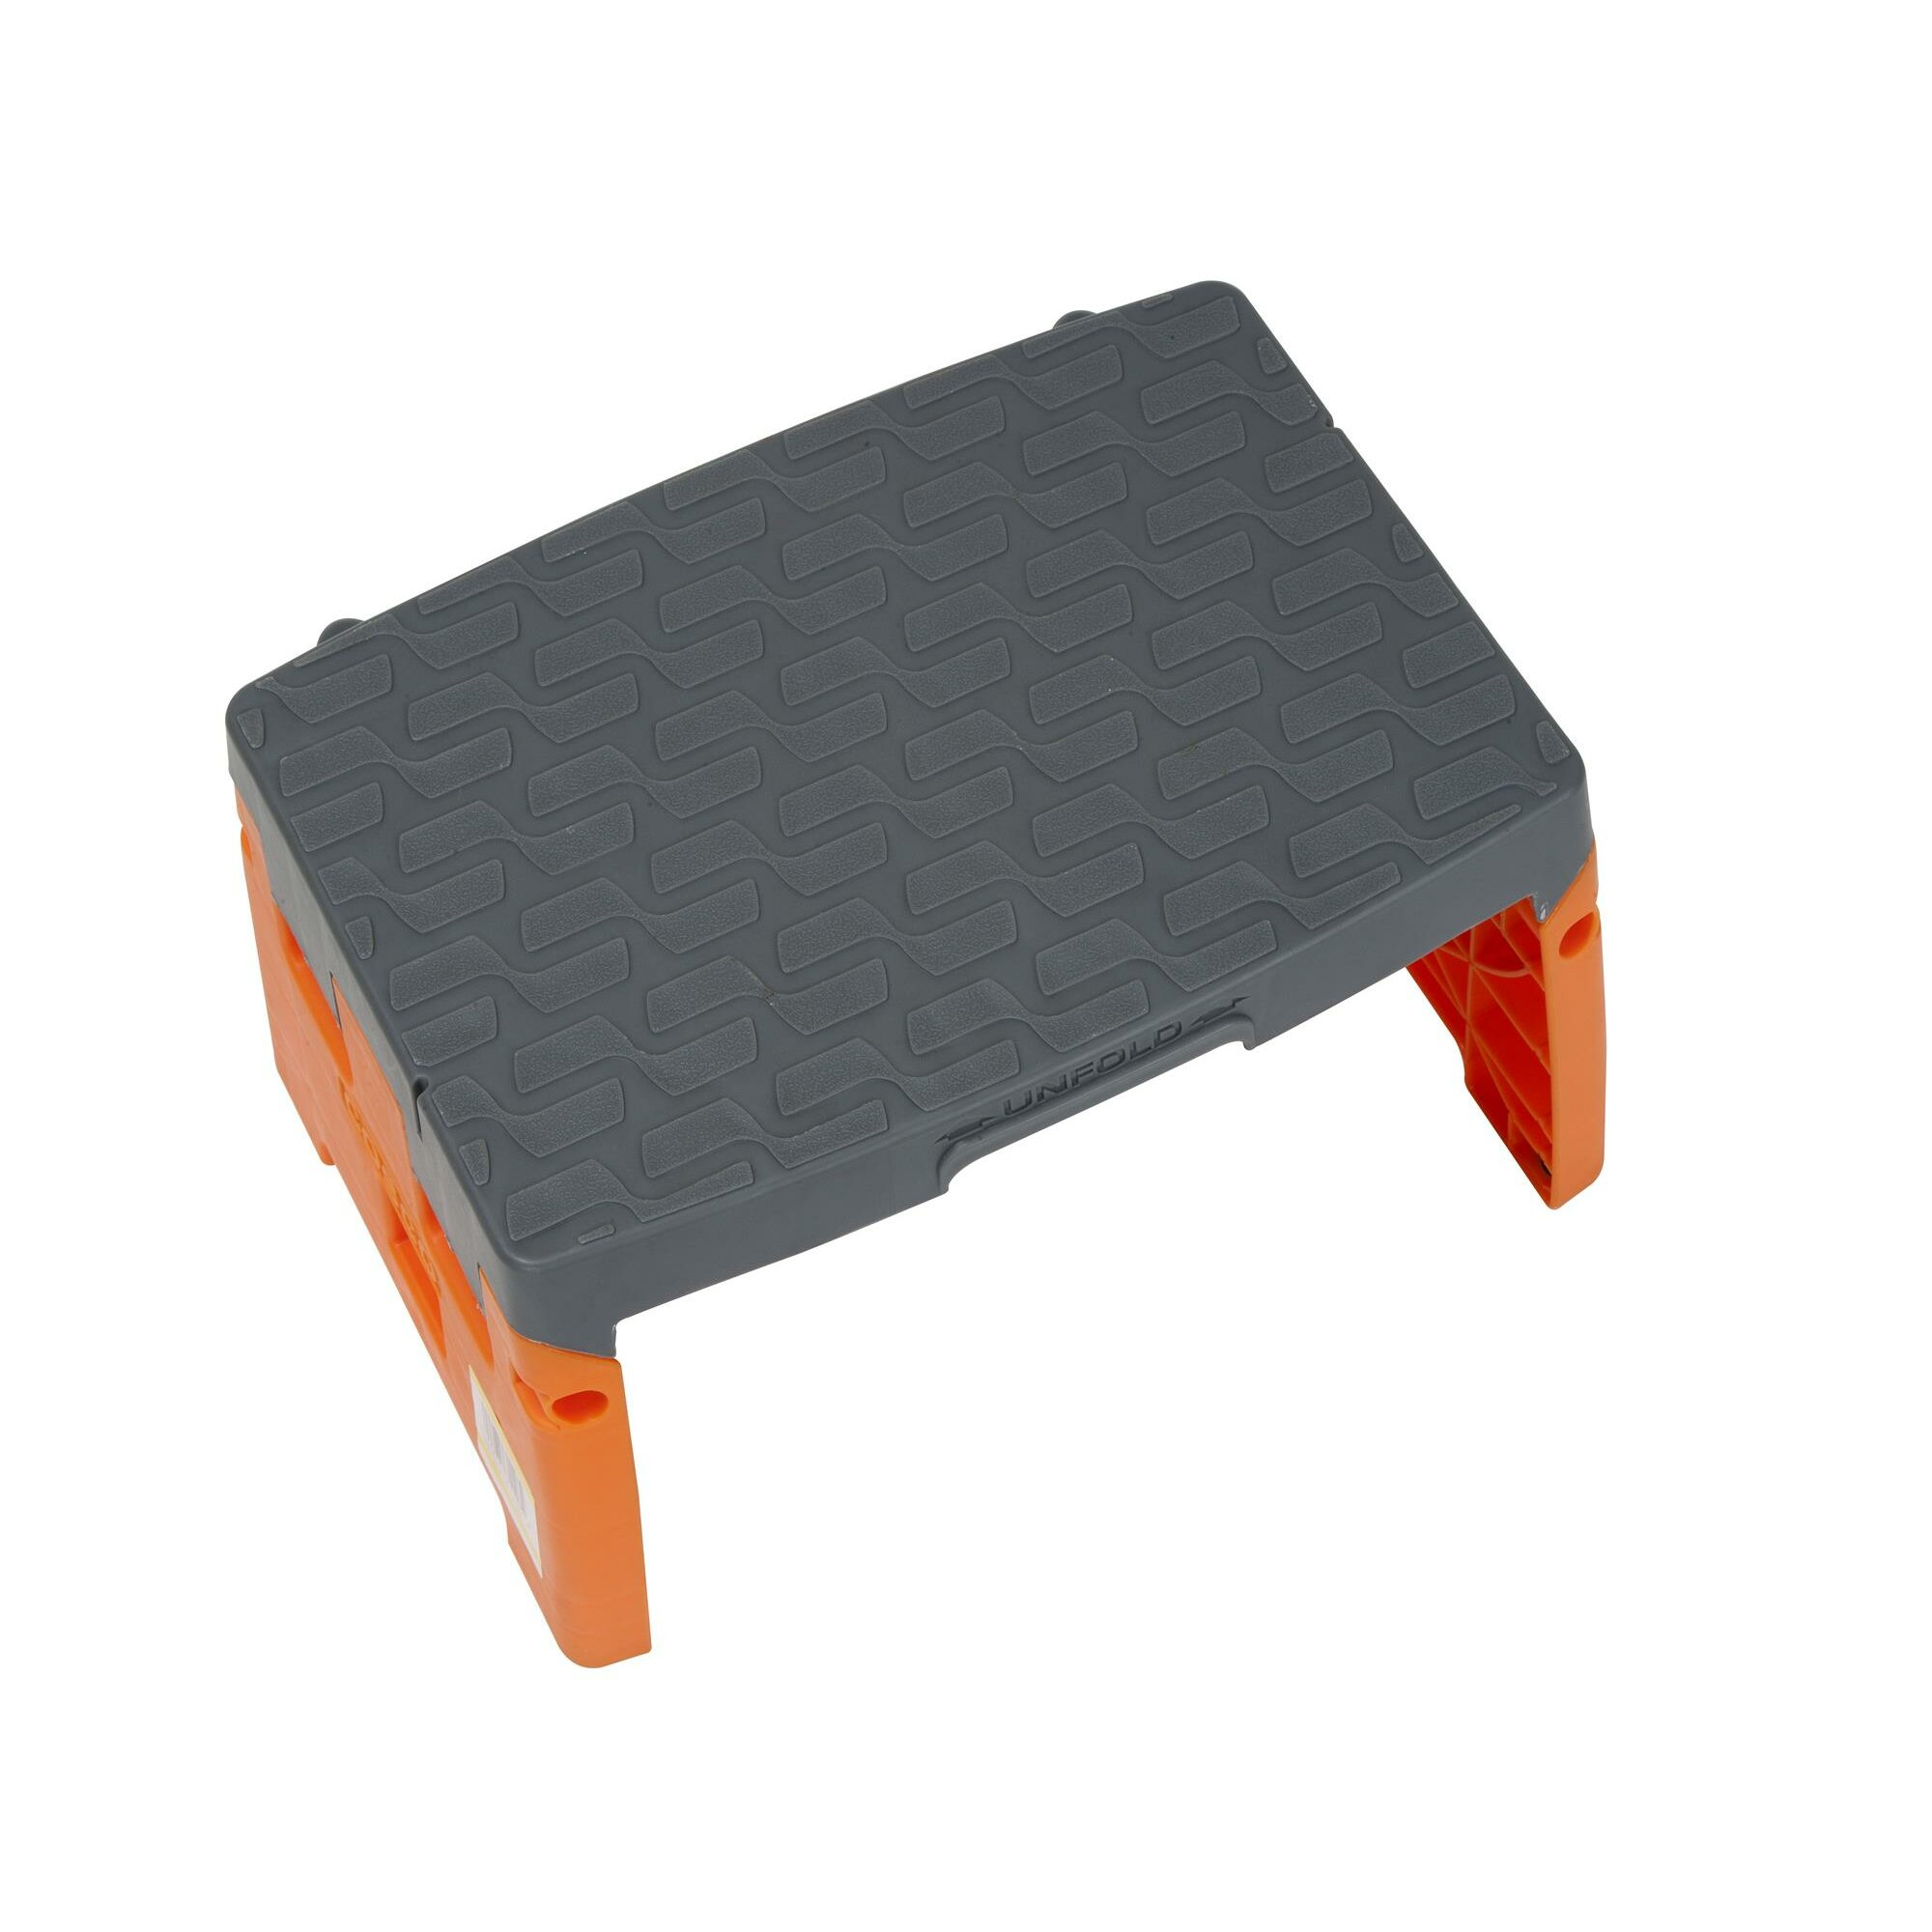 1 Step Plastic Molded Folding Step Stool With 300 Lb Load